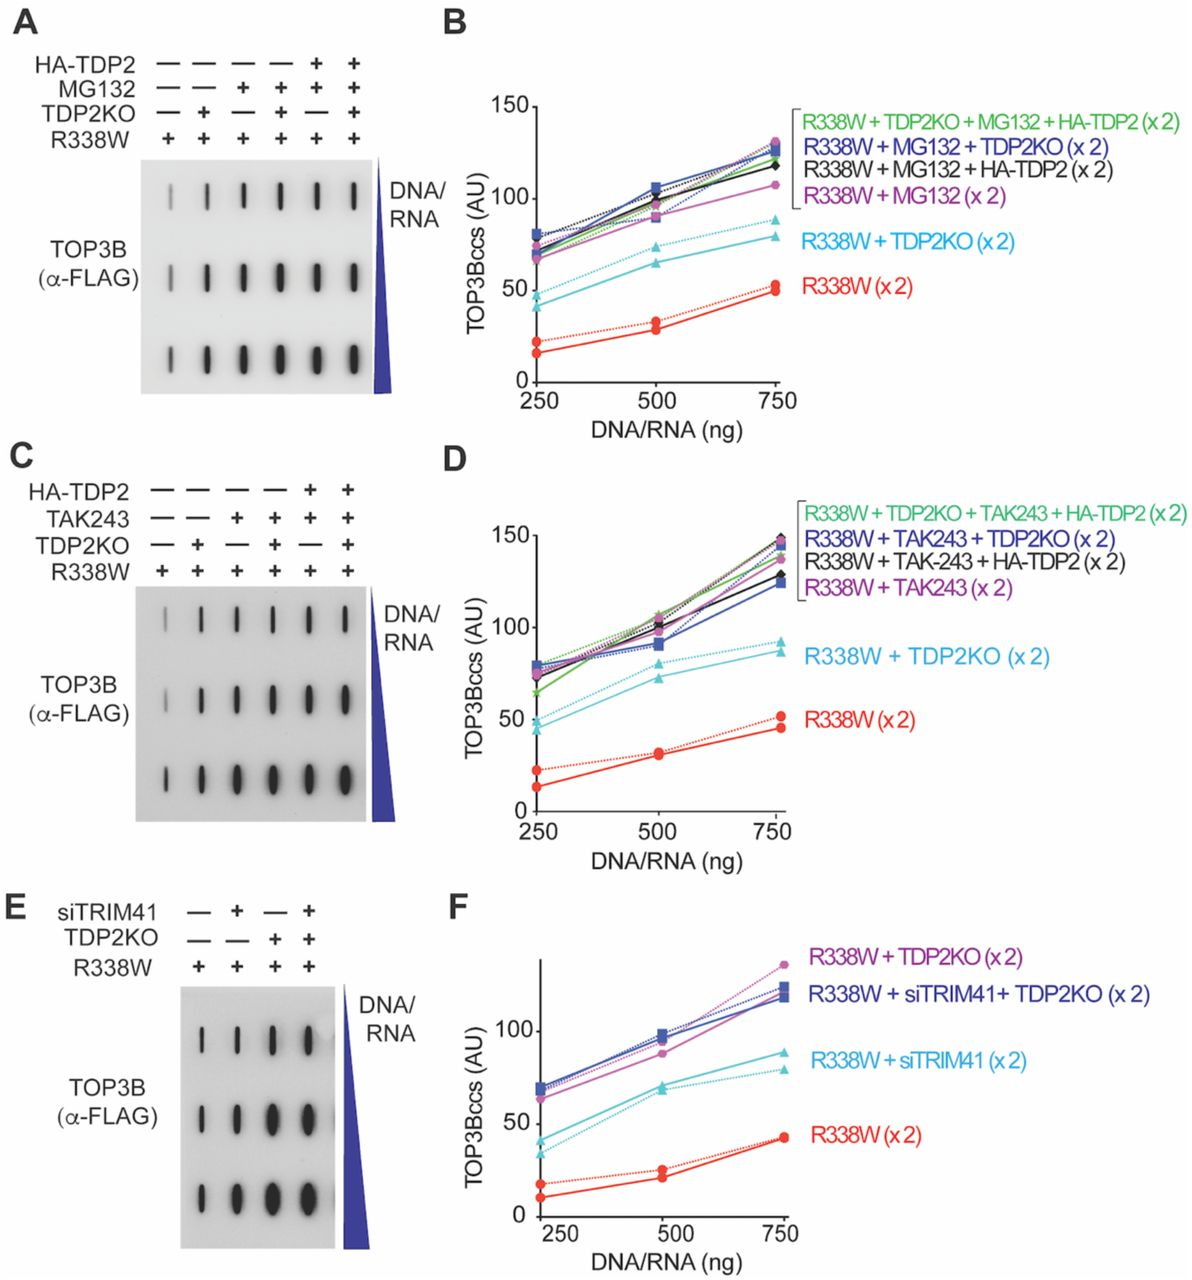 TDP2-Mediated Repair of TOP3Bccs is Dependent on Ubiquitination and Proteasomal Degradation (A) Wild-type and TDP2KO HCT116 cells were transfected with FLAG-tagged R338W TOP3B alone or co-transfected with HA-tagged TDP2 plasmid construct and incubated for 72 h. Before harvest, cells were treated with MG132 (10 µM, 2 h). Nucleic acids and protein-nucleic acid adducts were recovered by RADAR assay, slot-blotted and TOP3Bccs were detected using anti-FLAG antibody. The figure is representative of two independent experiments. (B) Quantitation of TOP3Bccs in 2 independent RADAR assays as shown in panel A. TOP3Bccs were measured by densitometric analyses of slot-blot signals and plotted individually (x2) as a function of total nucleic acid (DNA and RNA) concentration. (C) Wild-type and TDP2KO HCT116 cells were transfected with FLAG-tagged R338W TOP3B alone or co-transfected with HA-tagged TDP2 plasmid construct and incubated for 72 h. Before harvest, cells were treated with TAK-243 (10 µM, 2 h). Nucleic acids and protein-nucleic acid adducts were recovered by RADAR assay, slot-blotted and TOP3Bccs were detected using anti-FLAG antibody. The figure is representative of two independent experiments. (D) Quantitation of TOP3Bccs in 2 independent RADAR assays as shown in panel C. (E) Wild-type and TDP2KO HCT116 cells were transfected with FLAG-tagged R338W TOP3B alone or co-transfected with siTRIM41 constructs and incubated for 72 h. Cells were harvested, nucleic acids containing protein adducts isolated by RADAR assay and slot blotted. TOP3Bccs were detected with anti-FLAG antibody. The figure is representative of two independent experiments. (F) Quantitation of TOP3Bccs in 2 independent RADAR assays as shown in panel E.